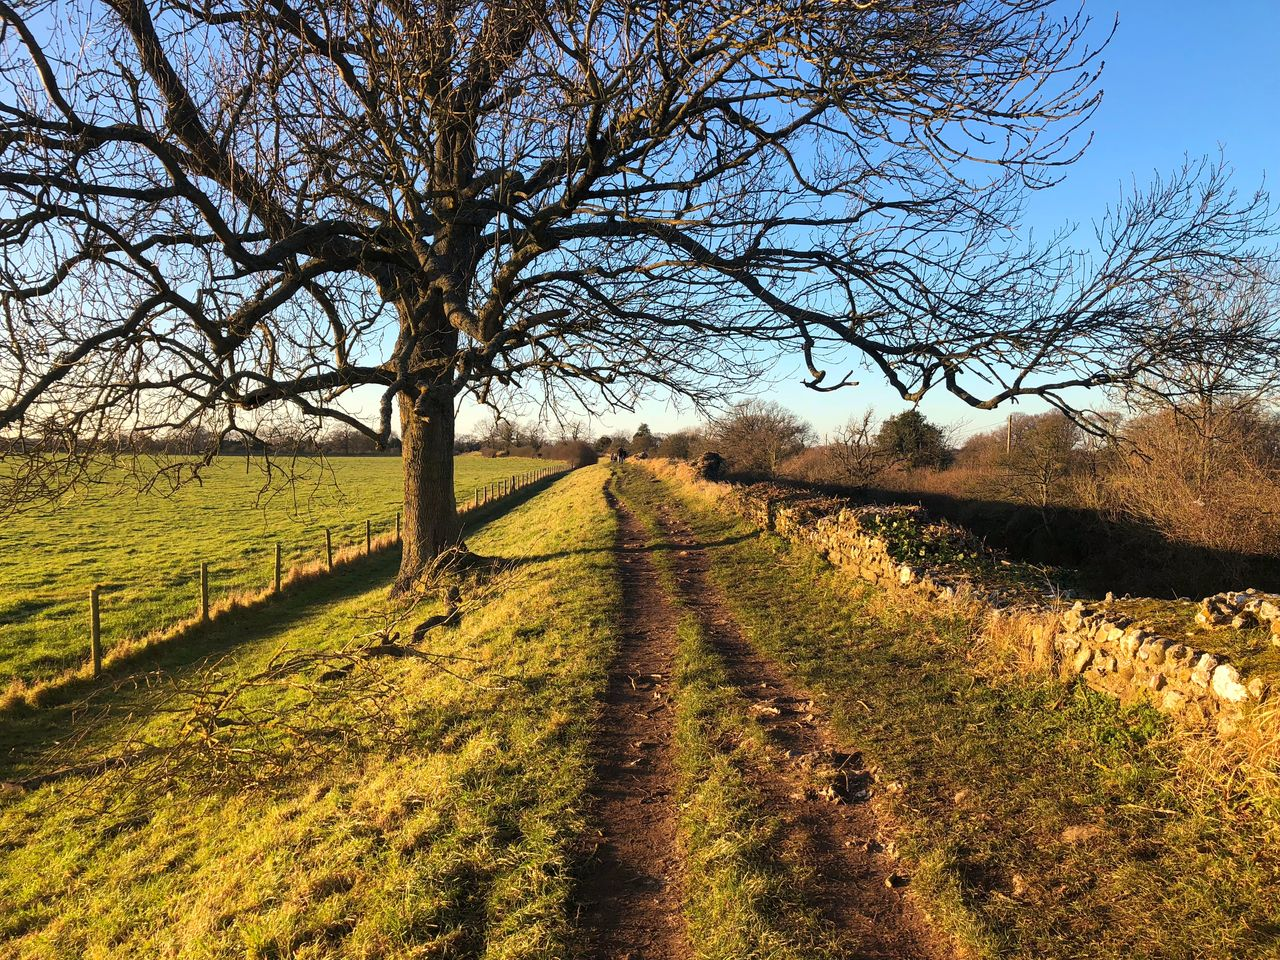 bare tree, field, landscape, tree, tranquility, tranquil scene, nature, beauty in nature, day, scenics, grass, the way forward, outdoors, rural scene, no people, sunlight, sky, clear sky